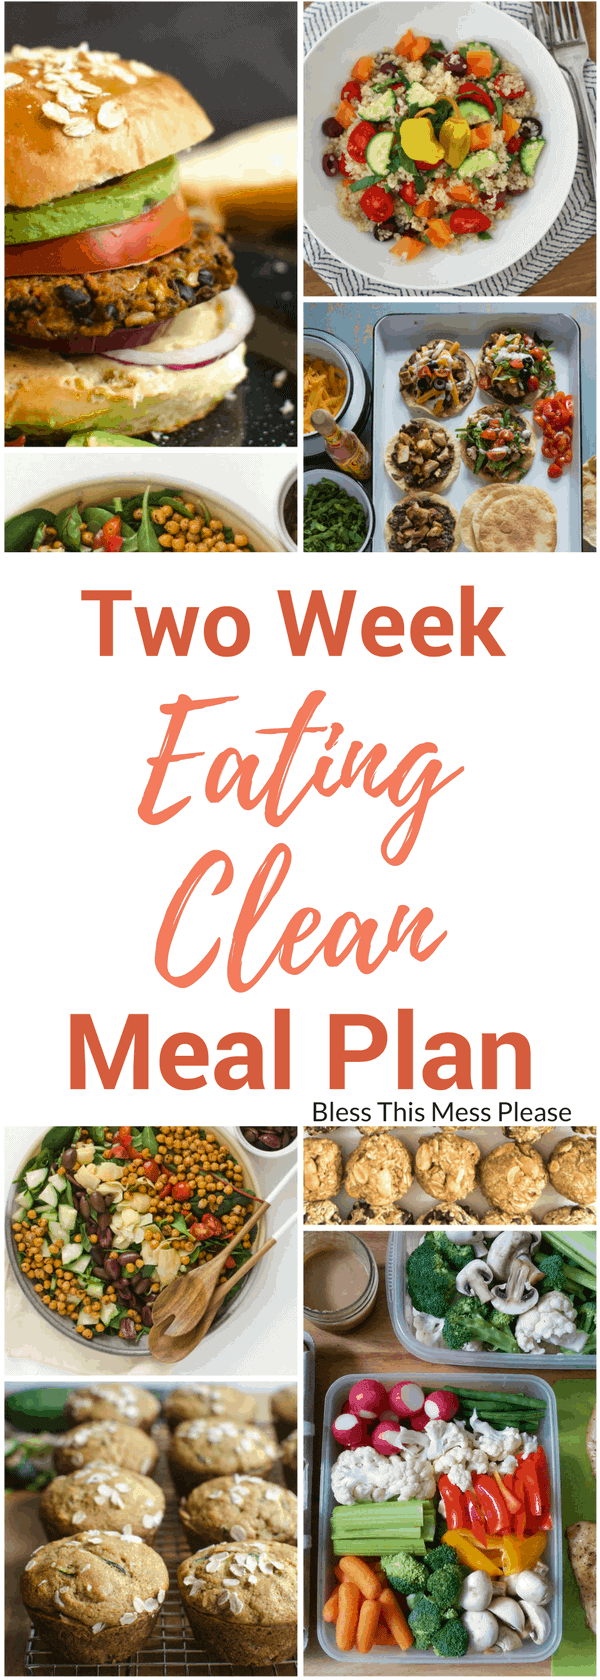 Eating clean meal plan summer menu bless this mess eating clean meal plan forumfinder Image collections